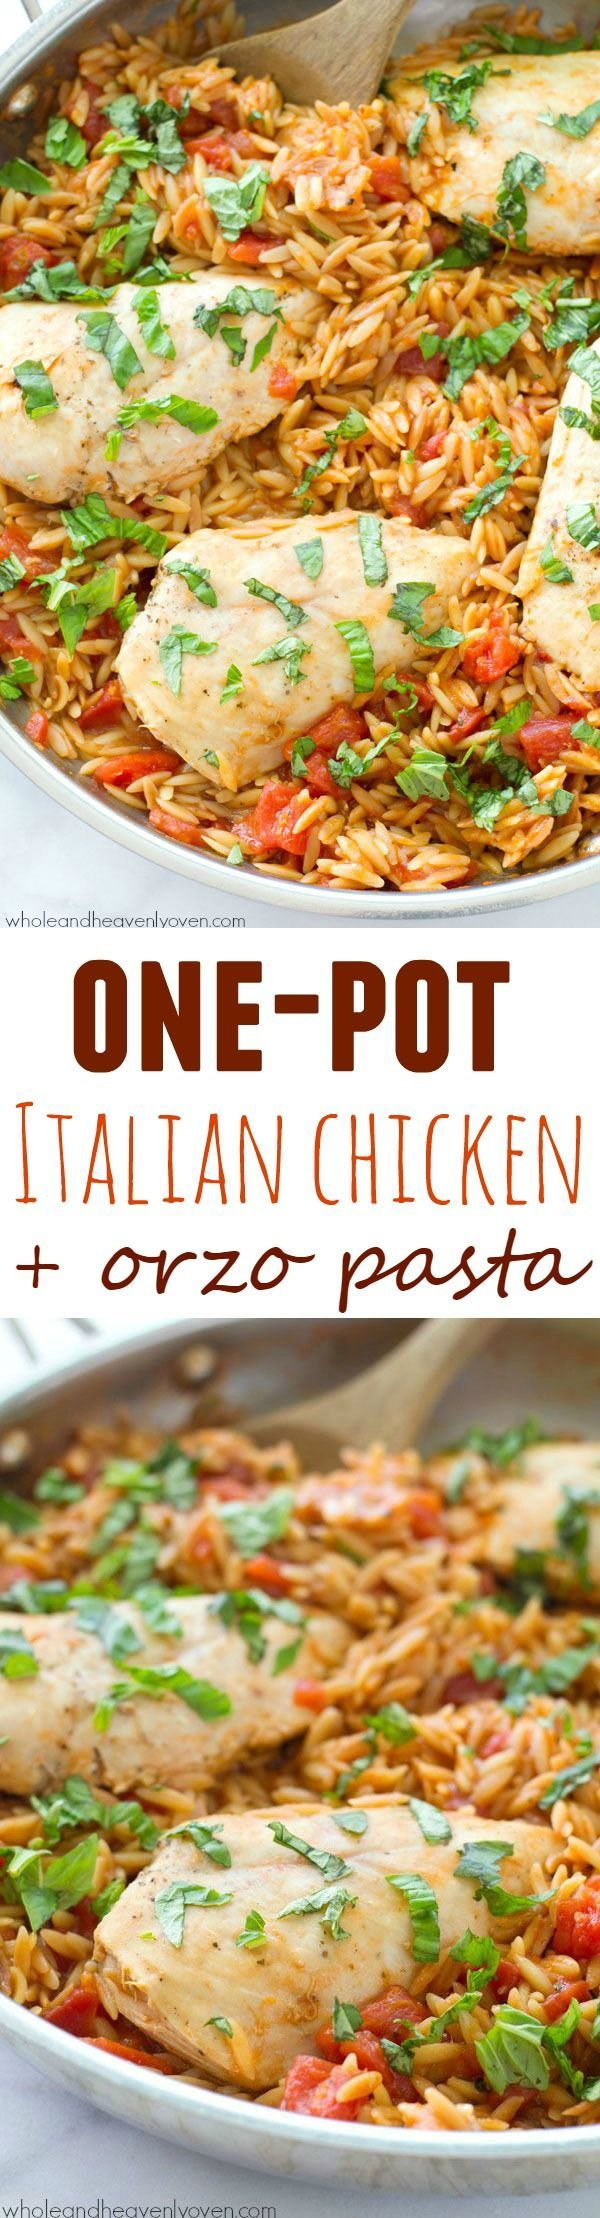 Ready in 30 minutes and made in only one pot, this Italian-style chicken and orzo pasta is total comfort food that anyone can make it's so easy! @WholeHeavenly